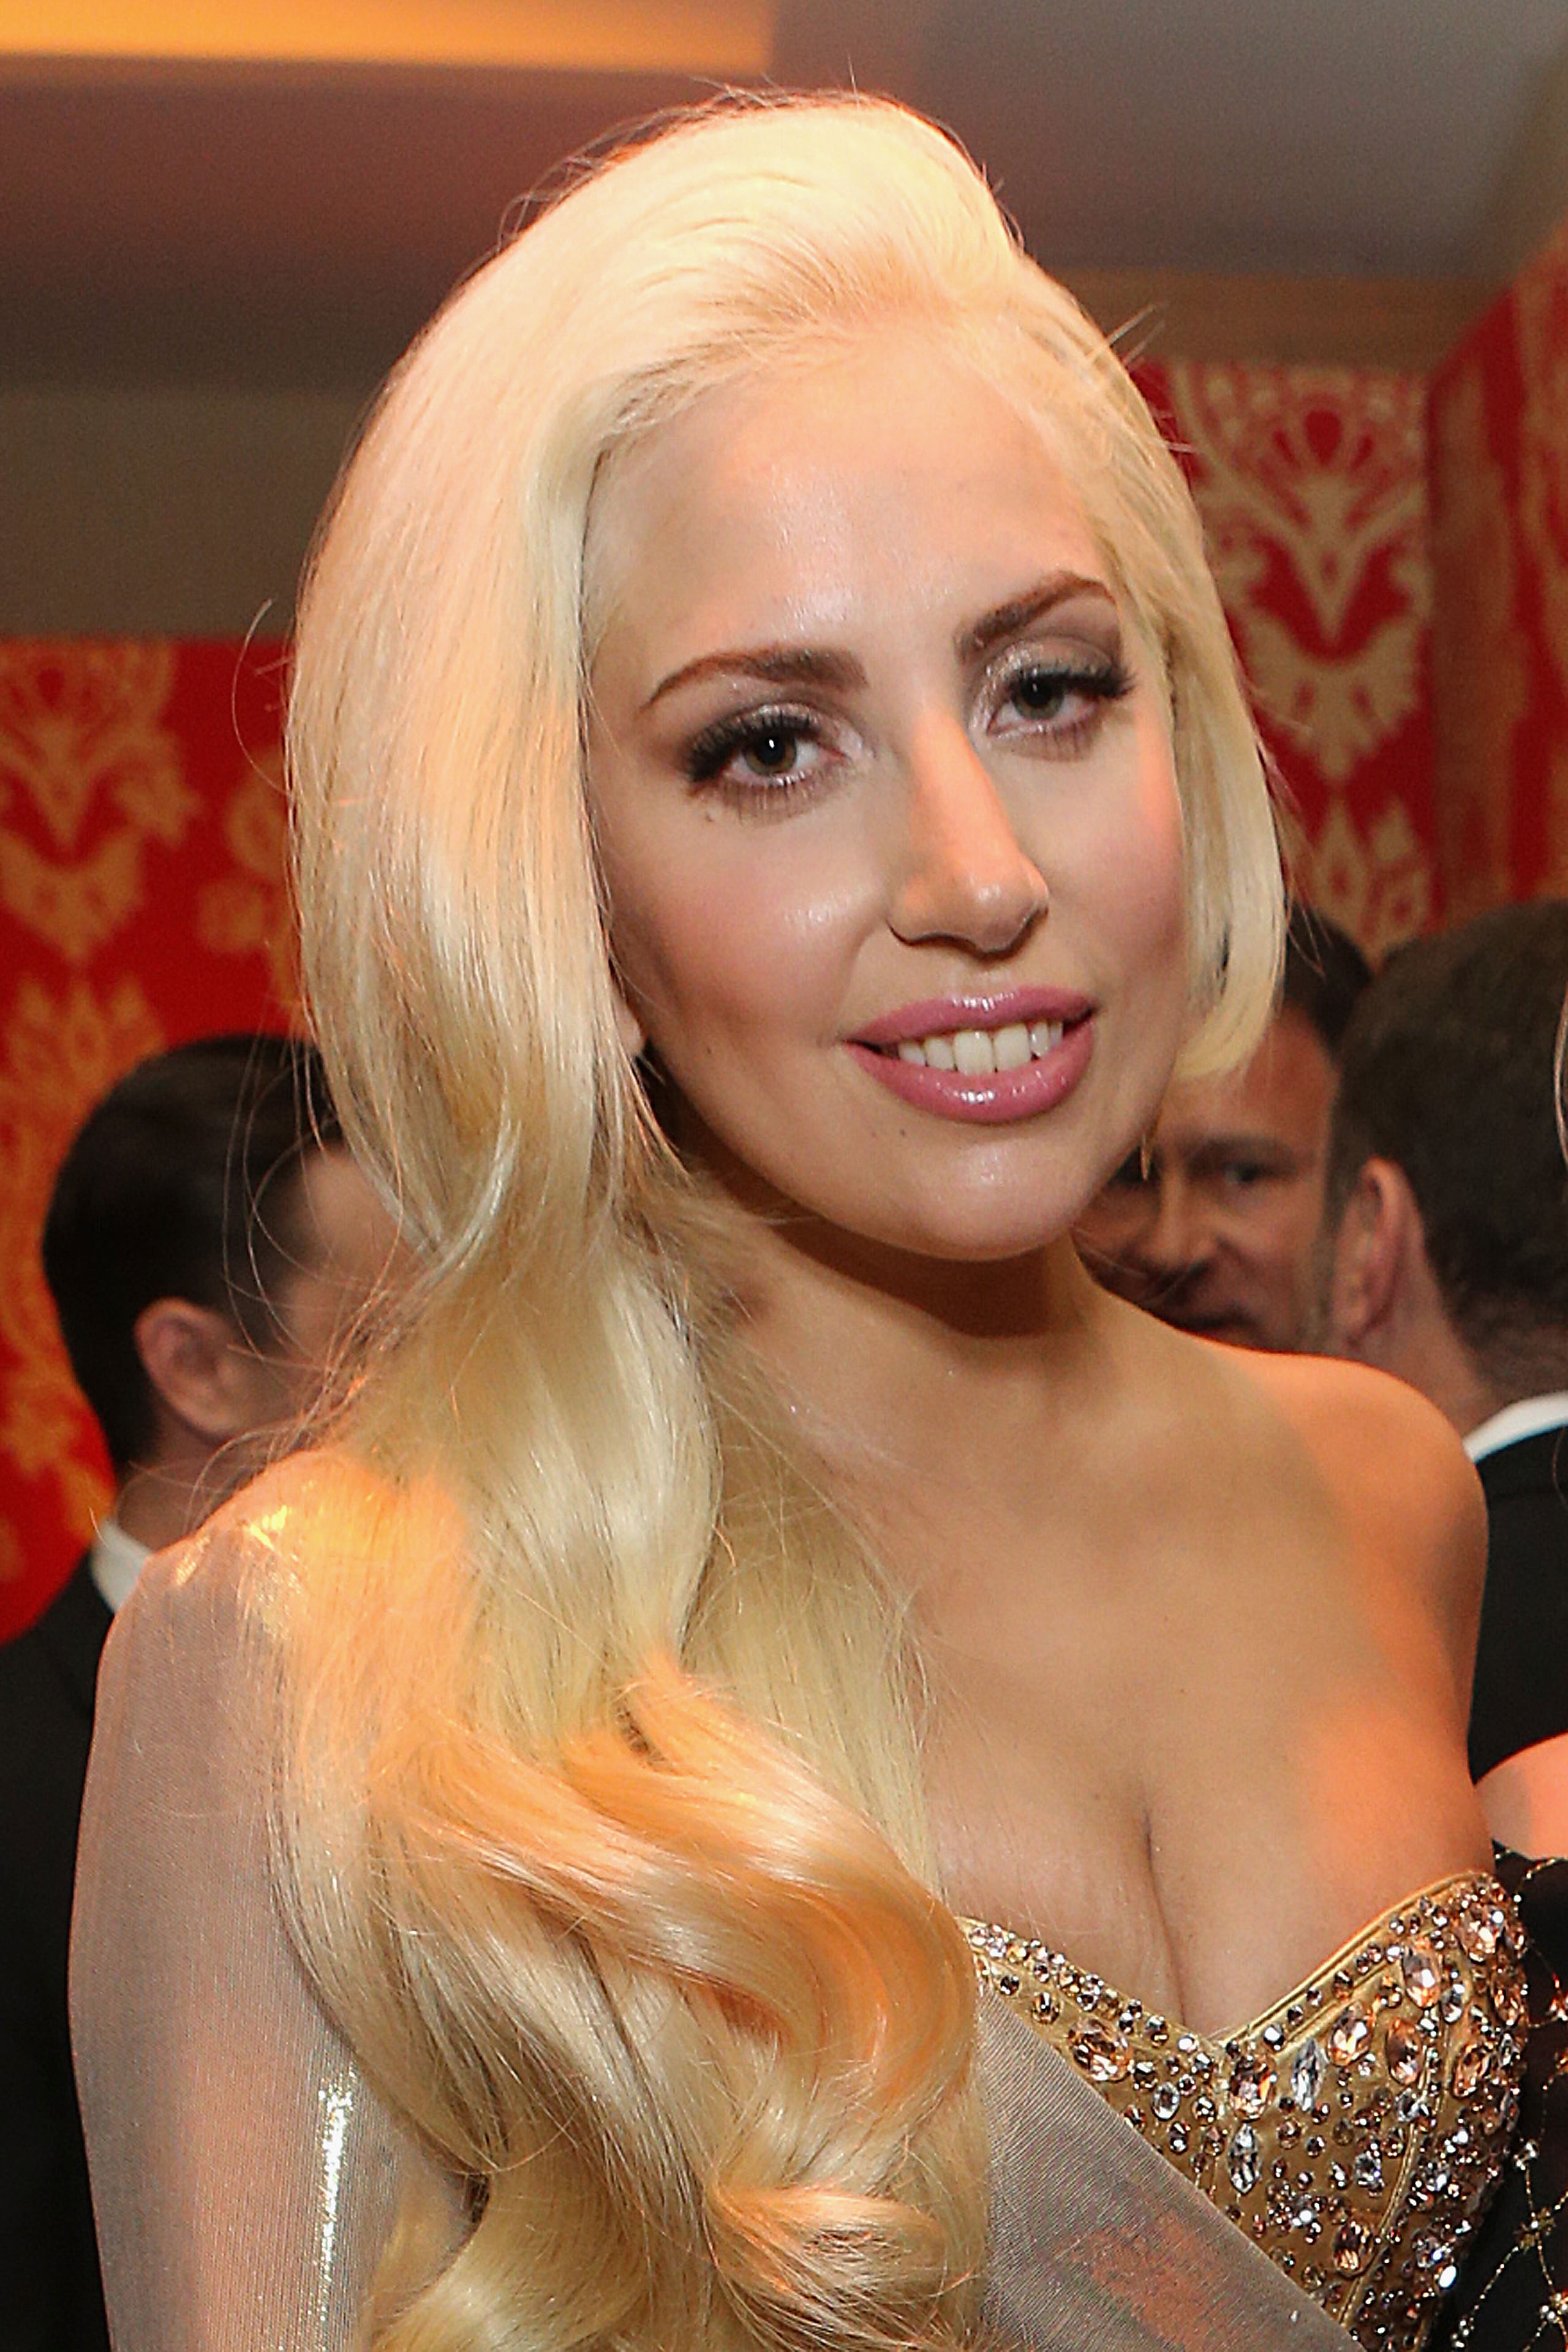 Lady Gagas Album Artpop Is Unbanned In This Country